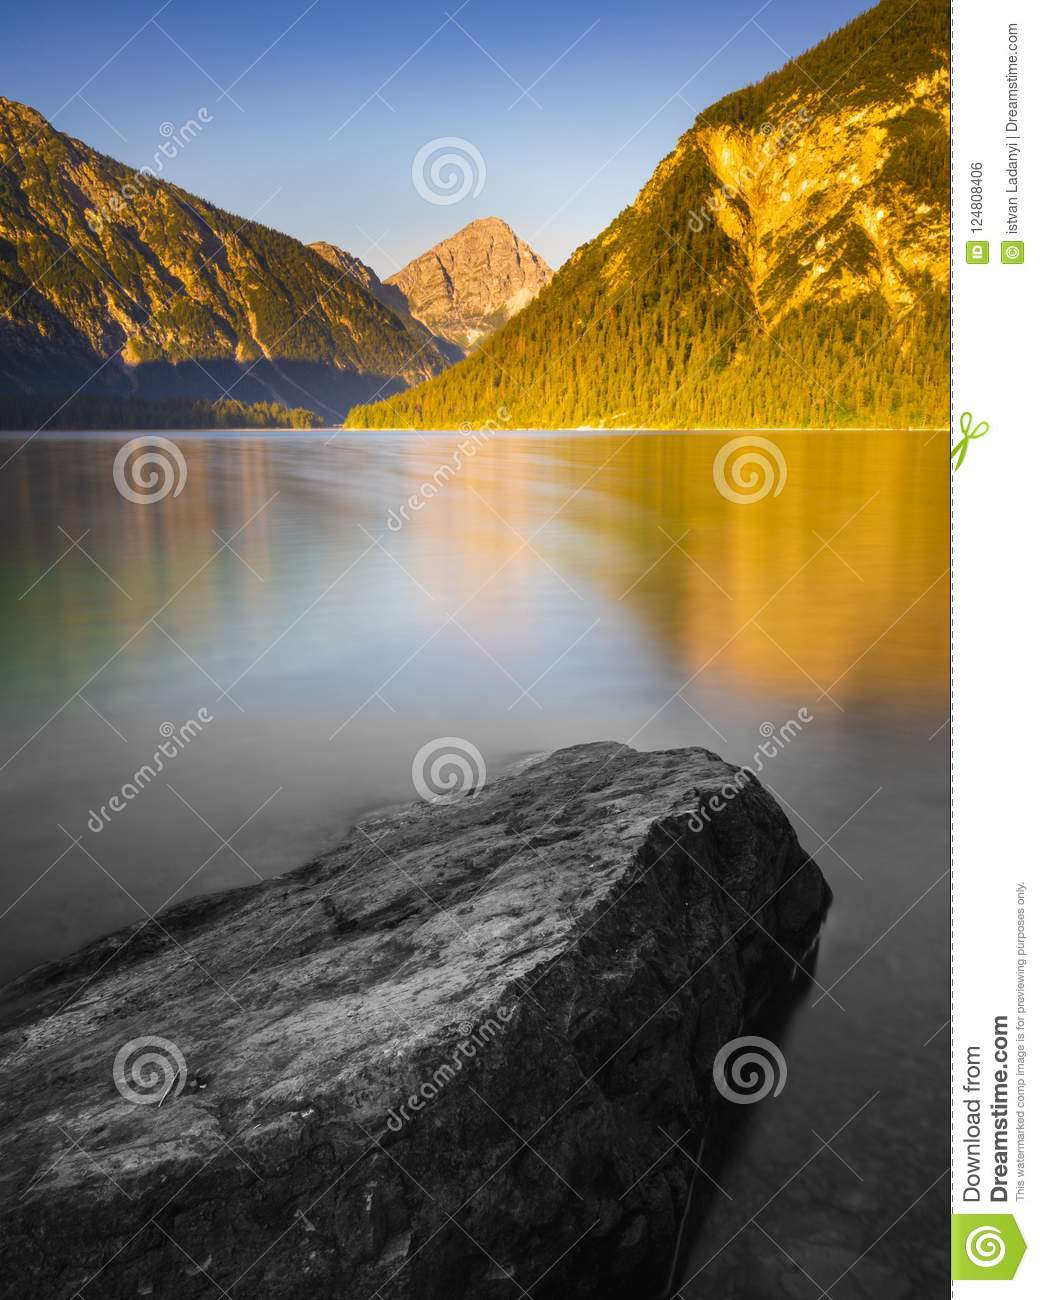 Mystic Stone In The Mountain Lake Stock Photo Image Of Evening